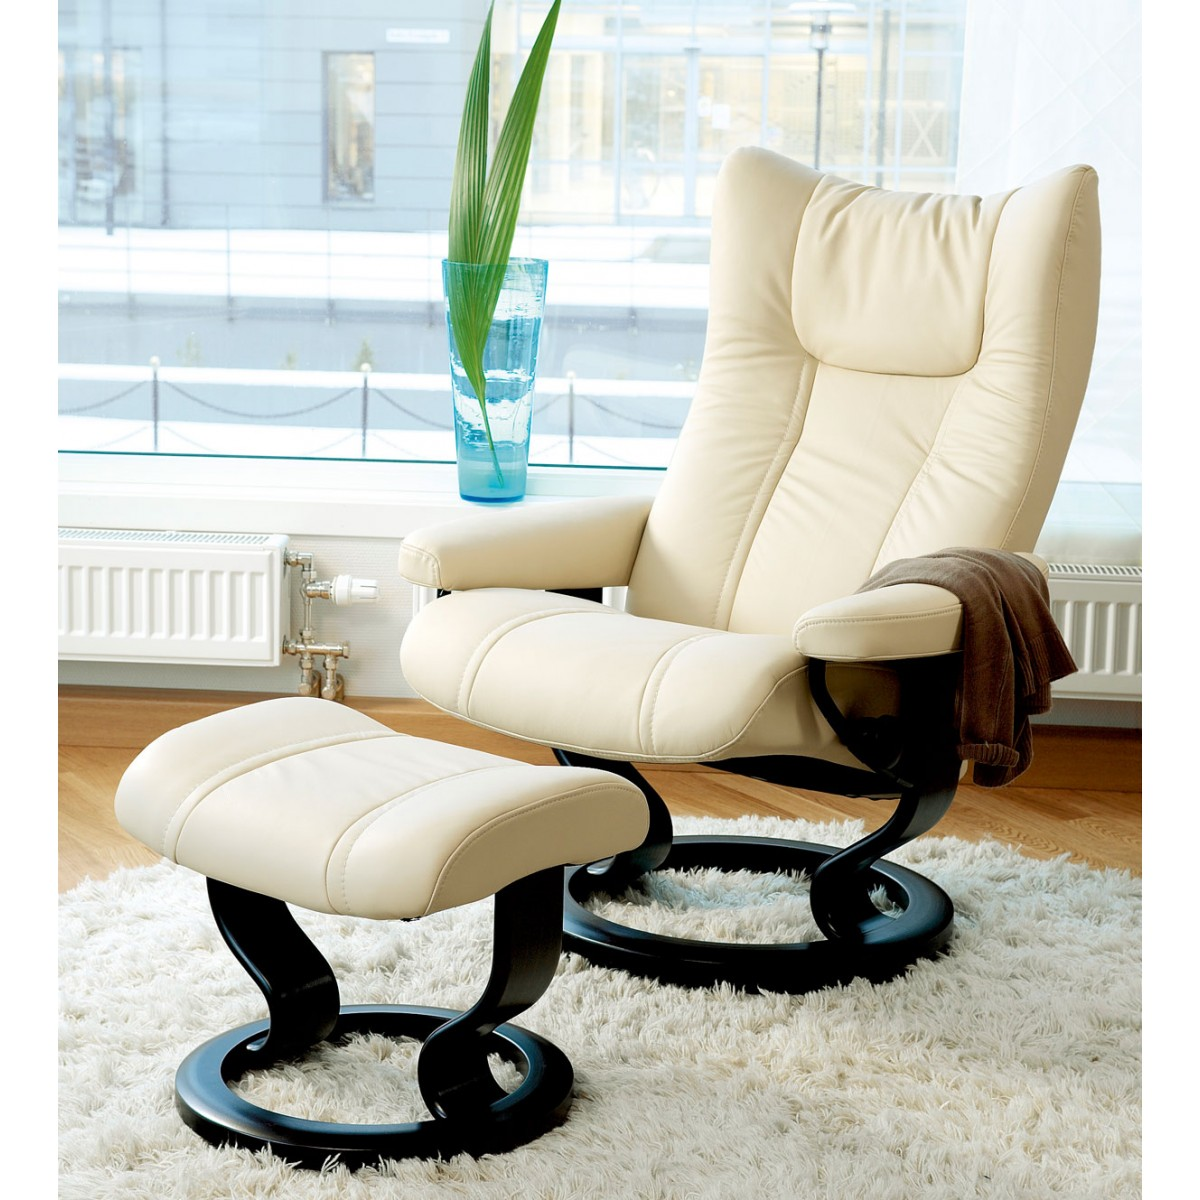 Stressless Wing Classic Legcomfort Stressless Wing Classic Recliner And Ottoman From 2 395 00